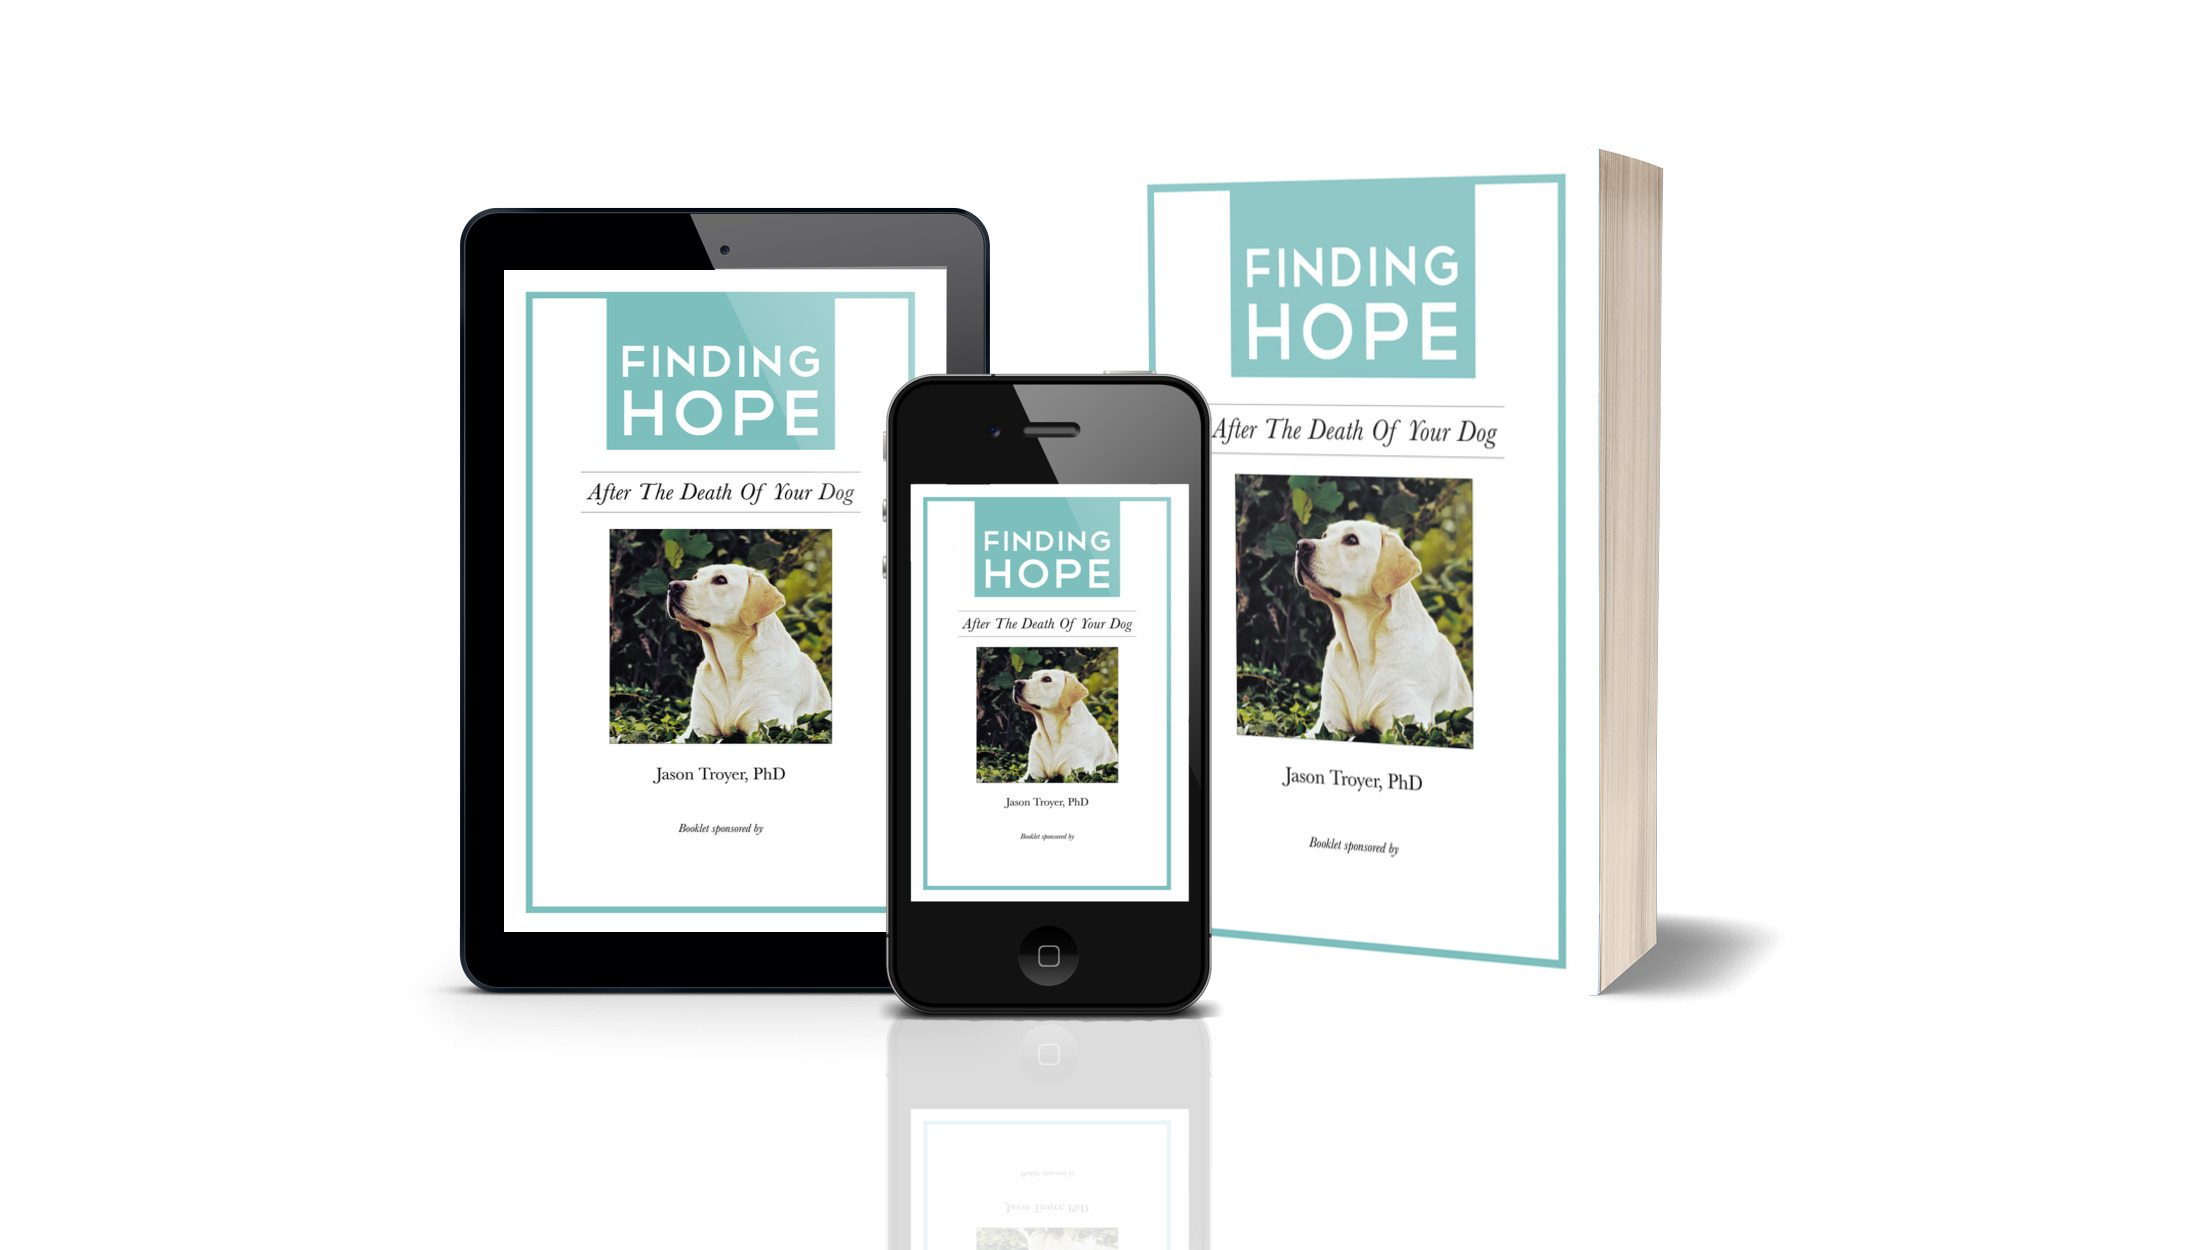 Finding Hope afterthe Loss of a Dog - Click Here to Download